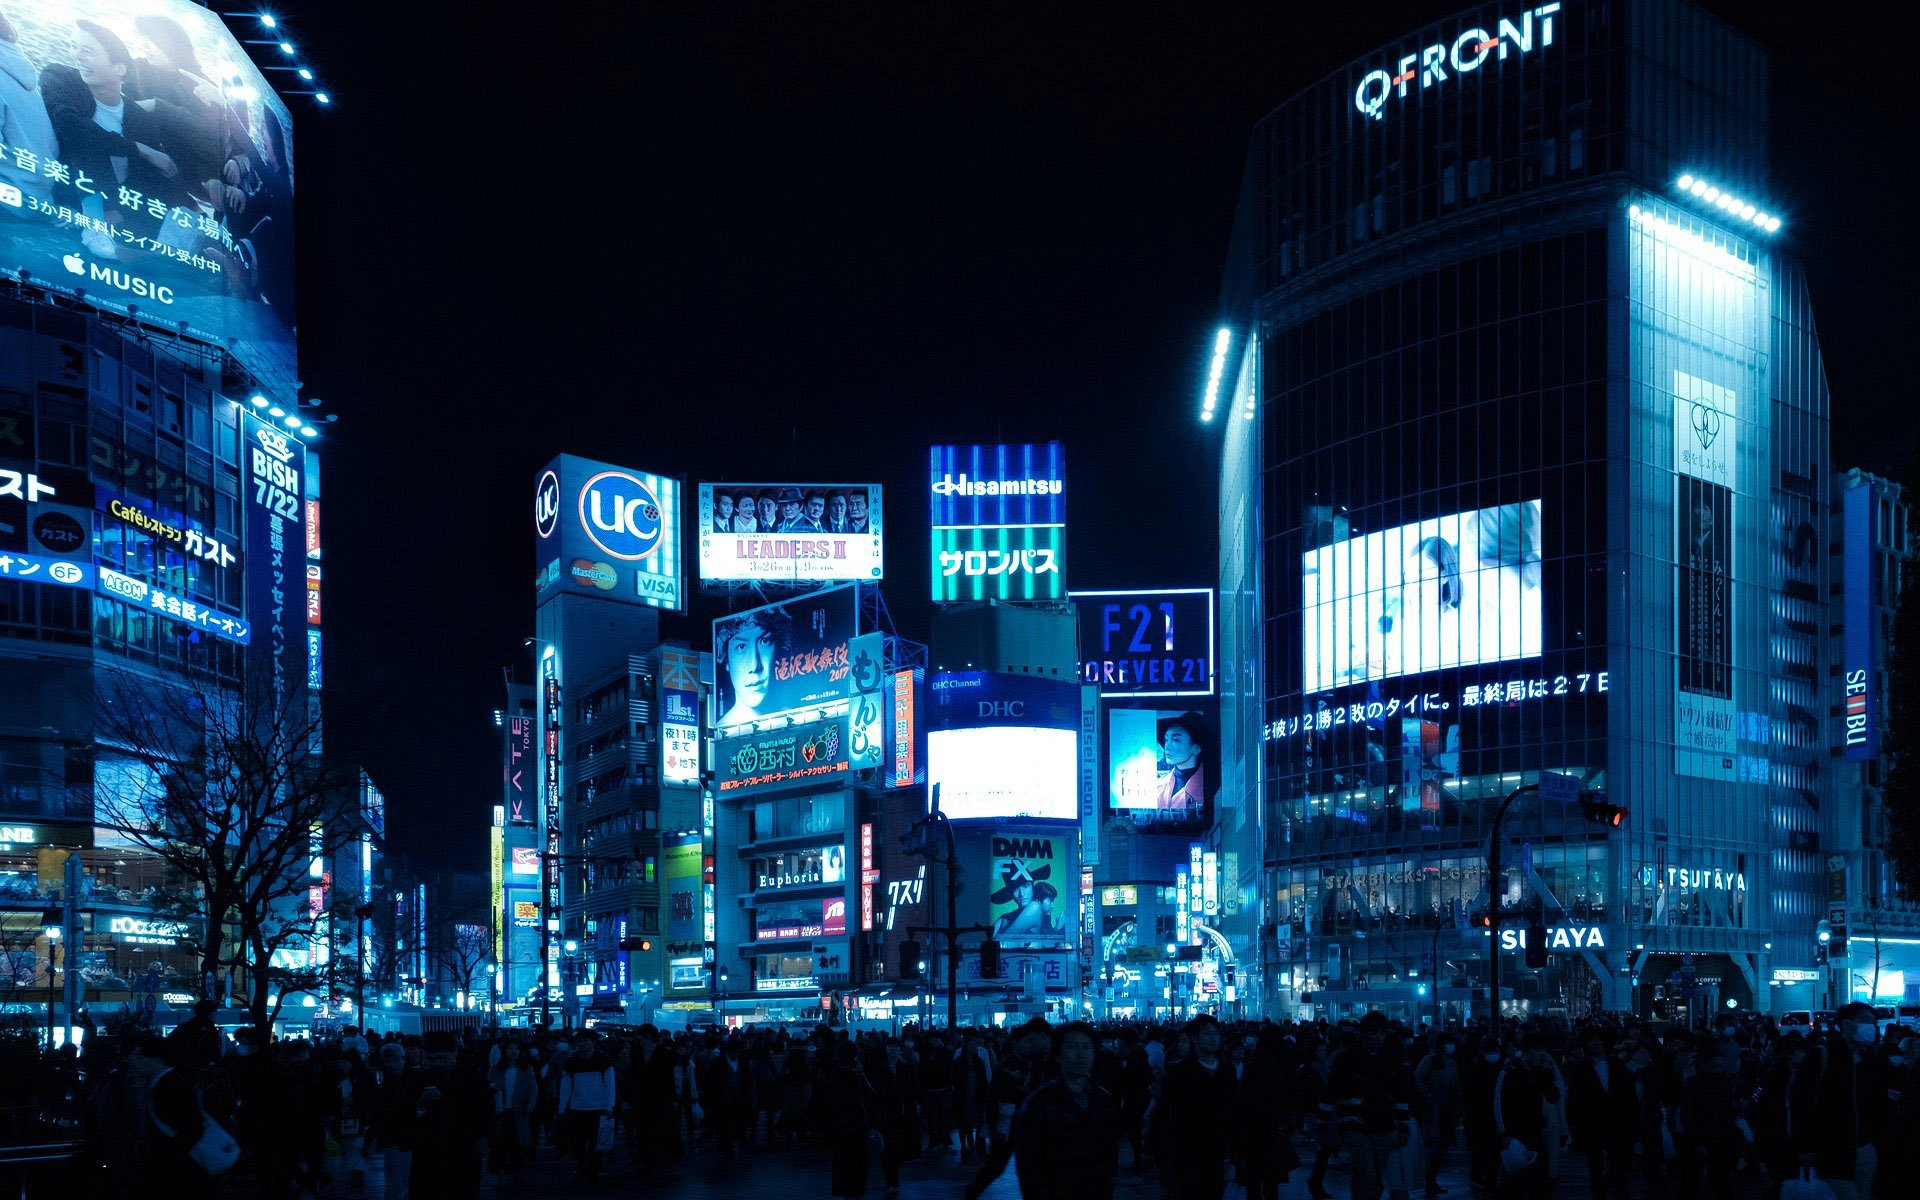 Research Team in Japan Announces Principles For Regulation of ICOs